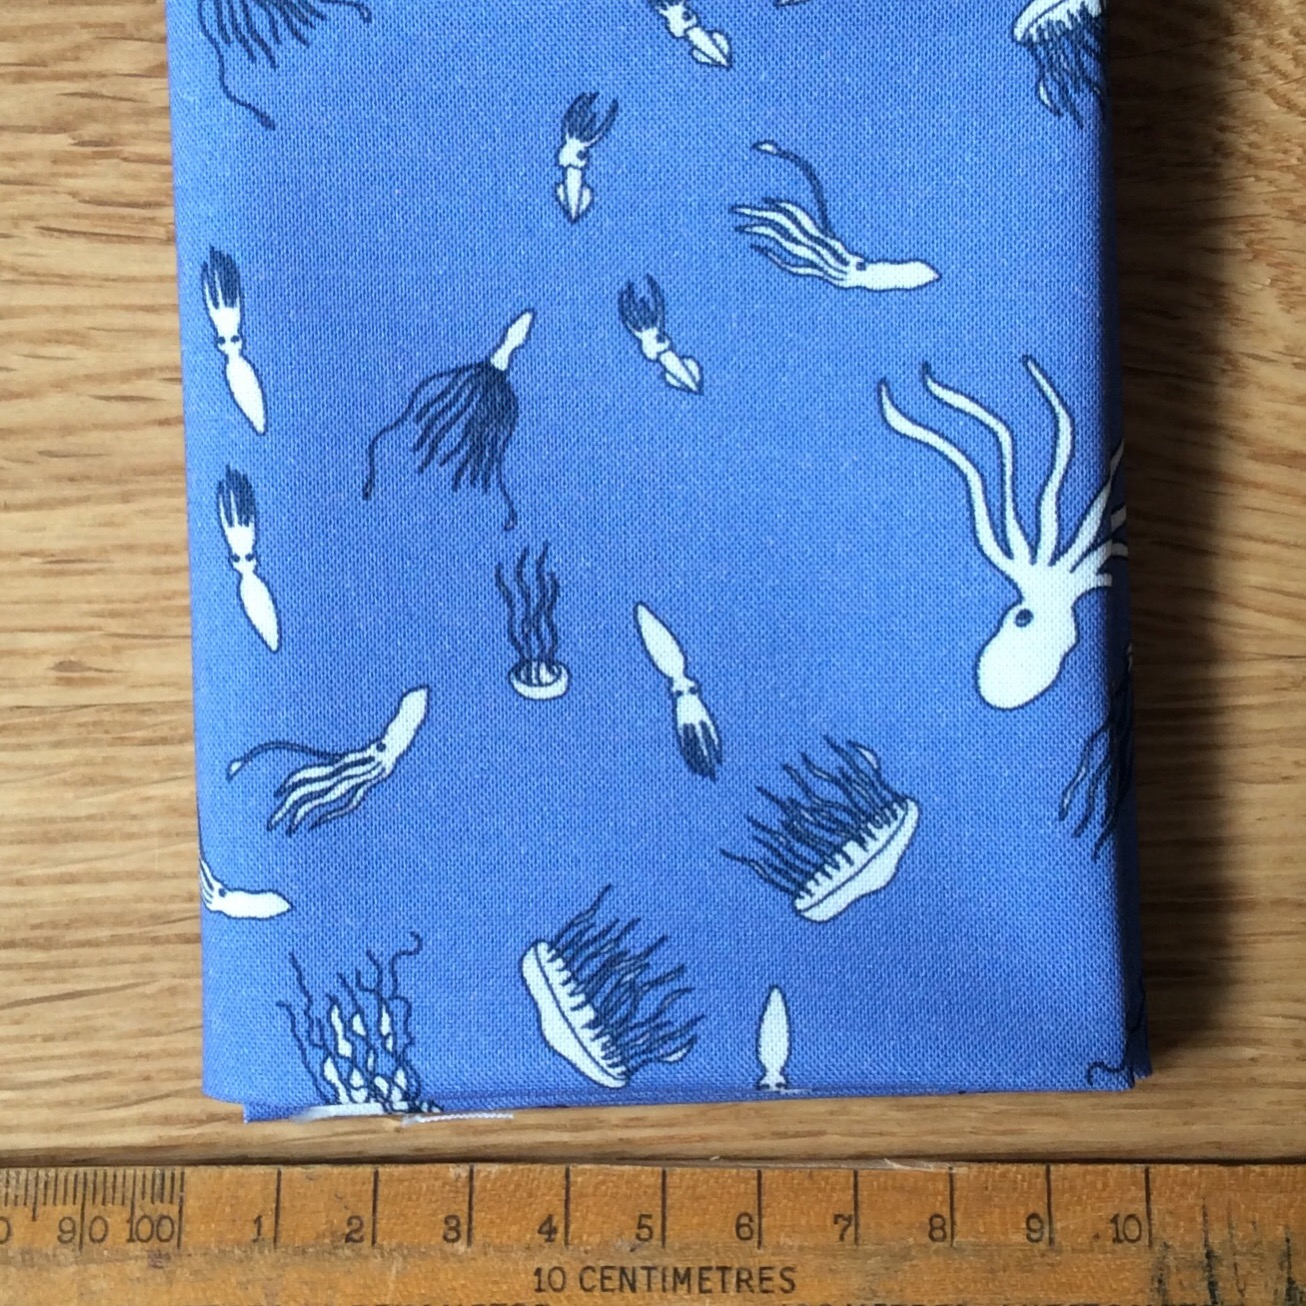 From the deep fabric fat quarter